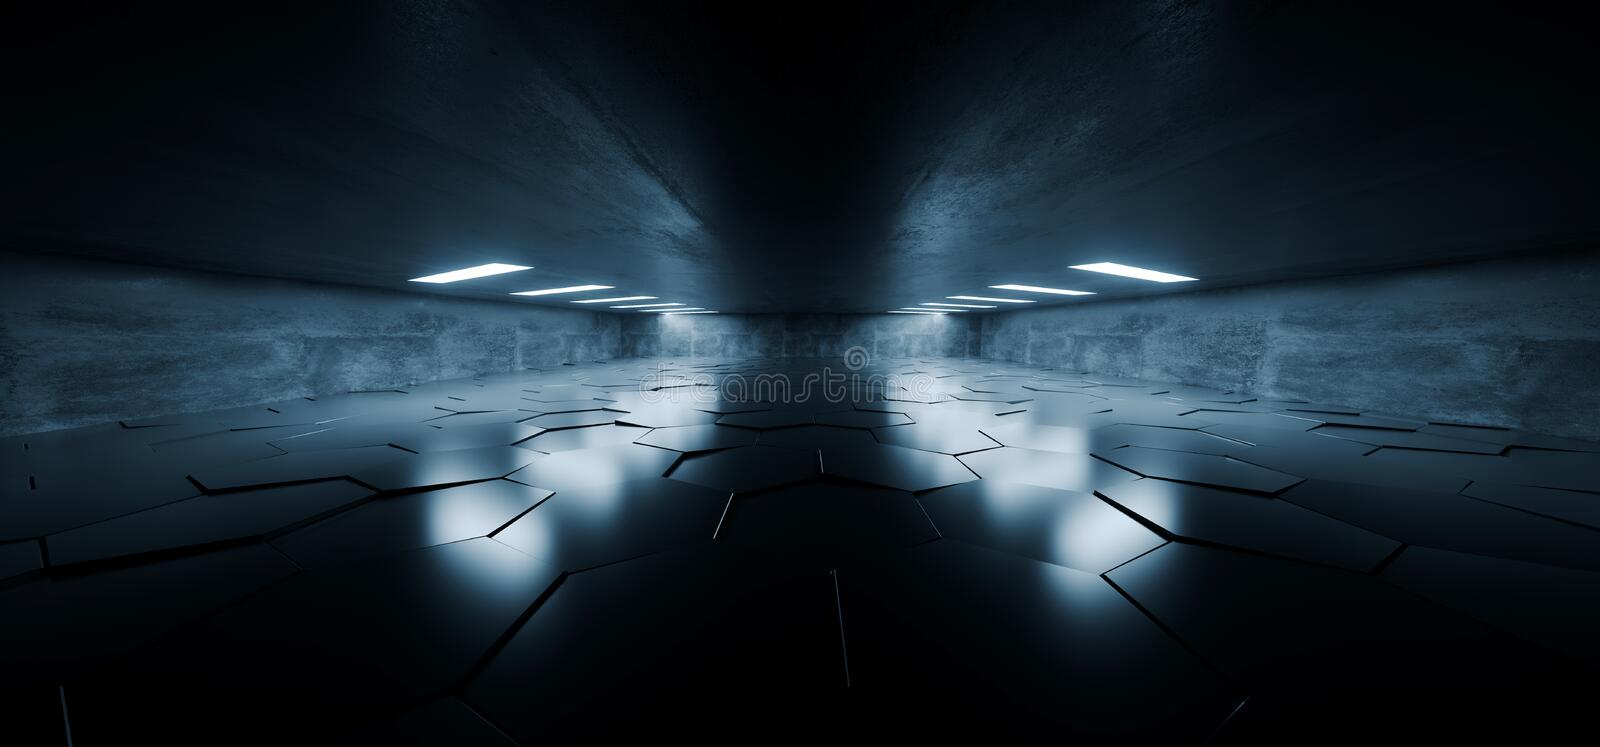 Sci Fi Futuristic Concrete Grunge Tunnel Hallway Reflective Garage Underground Garage Glowing Blue White Windows Led Lights Tiled. Floor 3D Rendering royalty free illustration